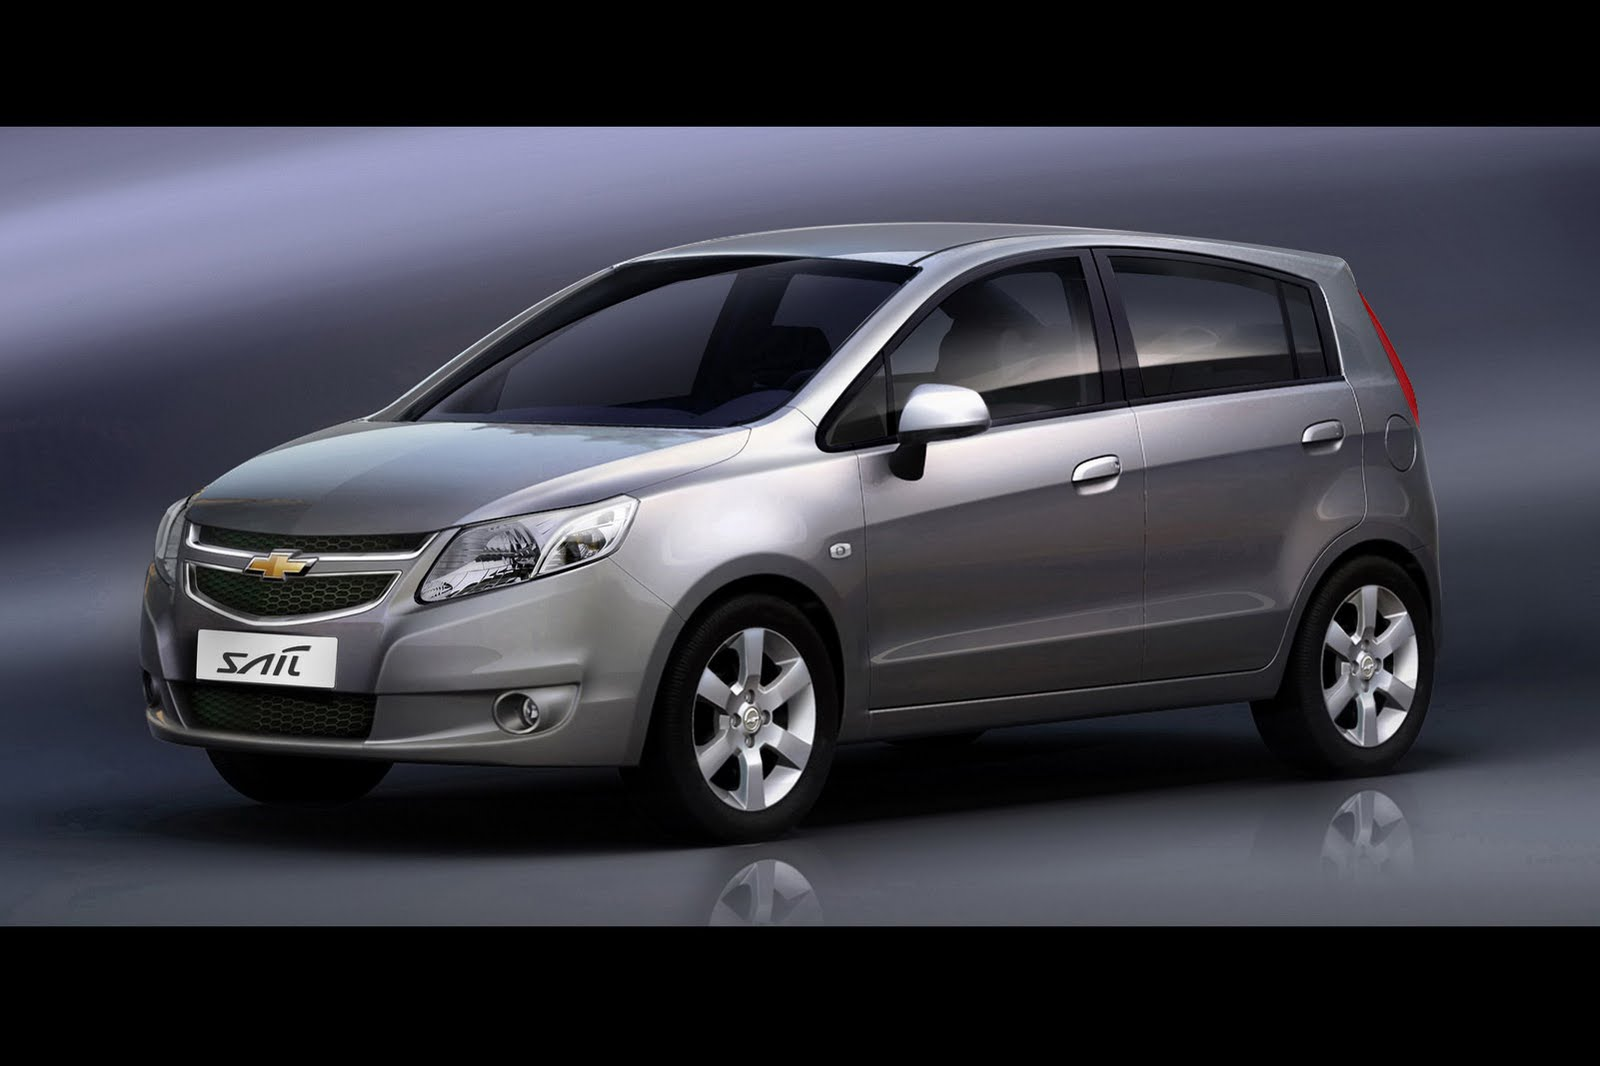 Chevrolet Debuts Sail Hatchback and MPV Concept at New Delhi Auto Expo Wallpapers Download